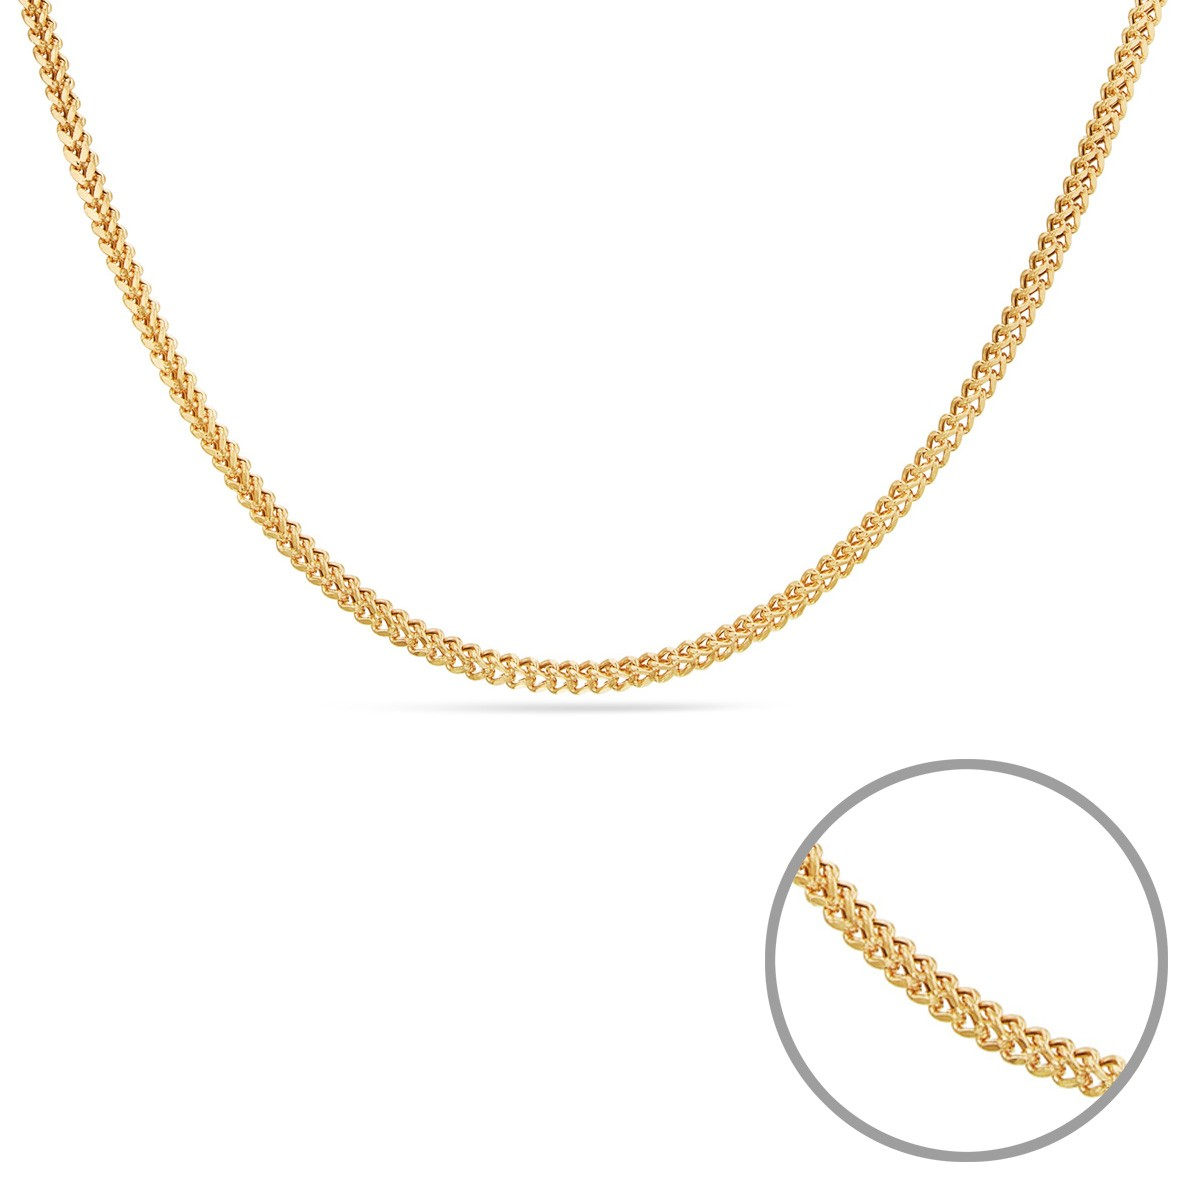 Intricate Design - Chains - Gold